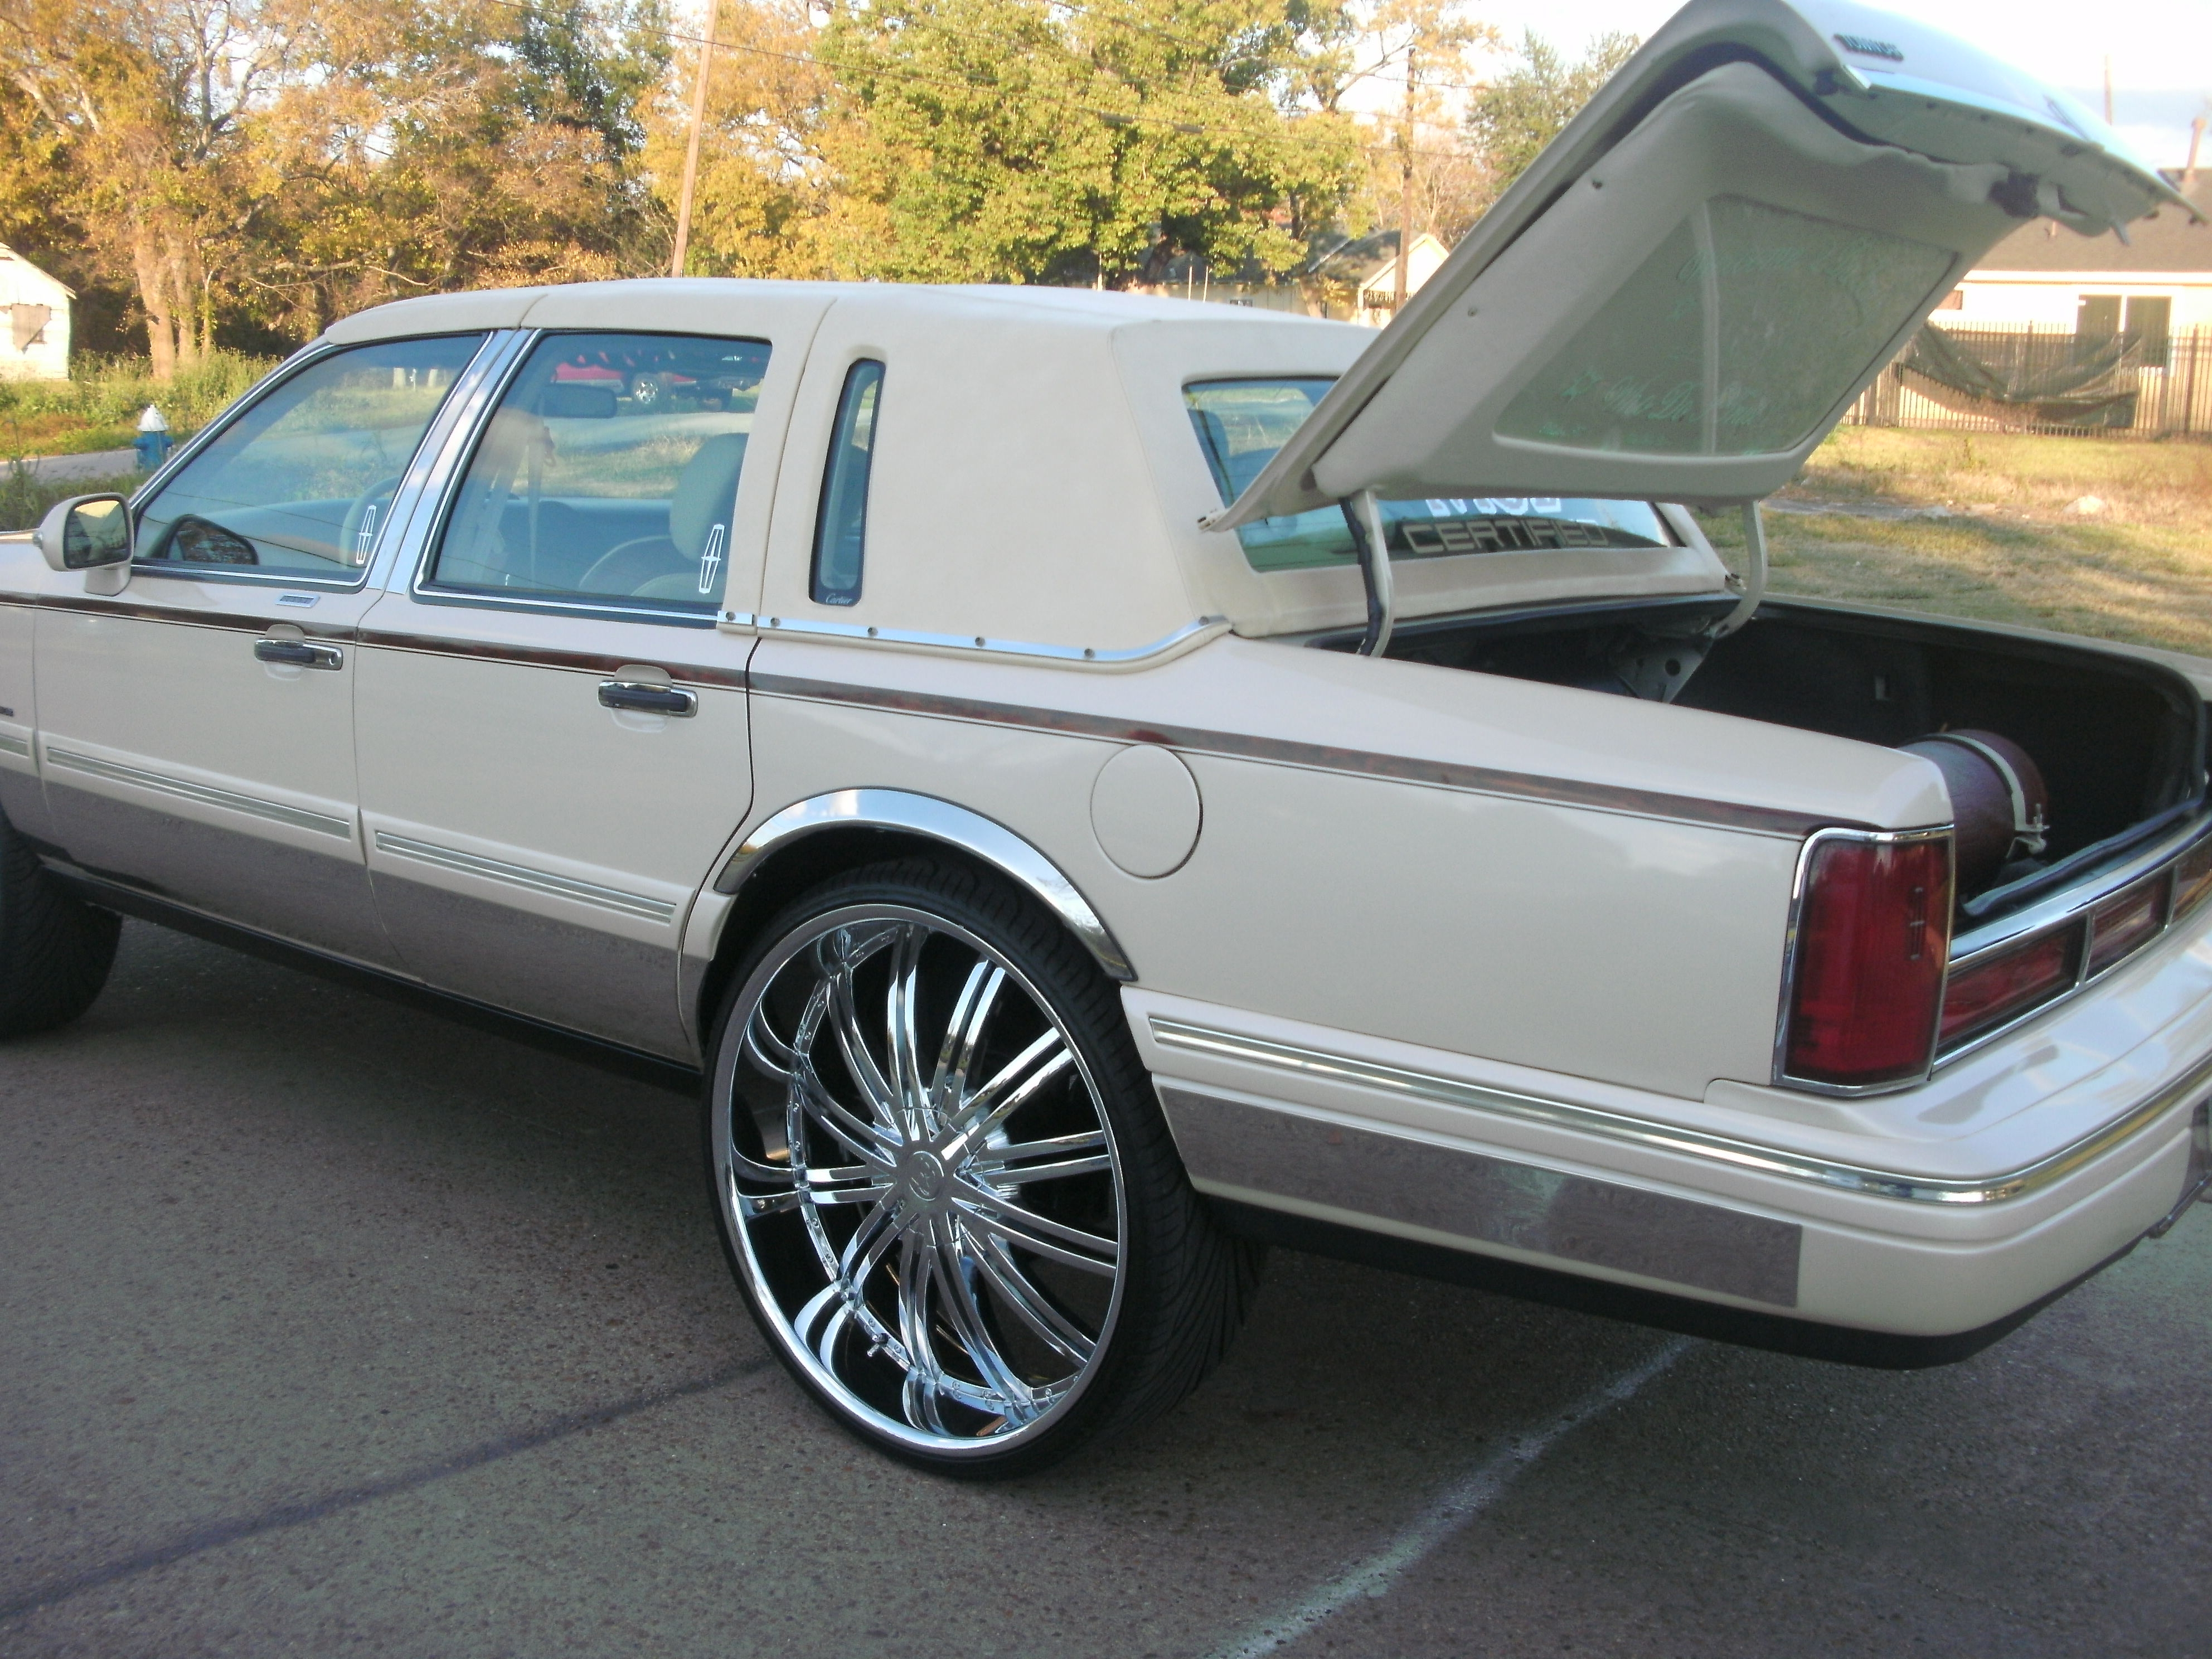 mobster26 1996 lincoln town car specs photos modification info at cardomain. Black Bedroom Furniture Sets. Home Design Ideas